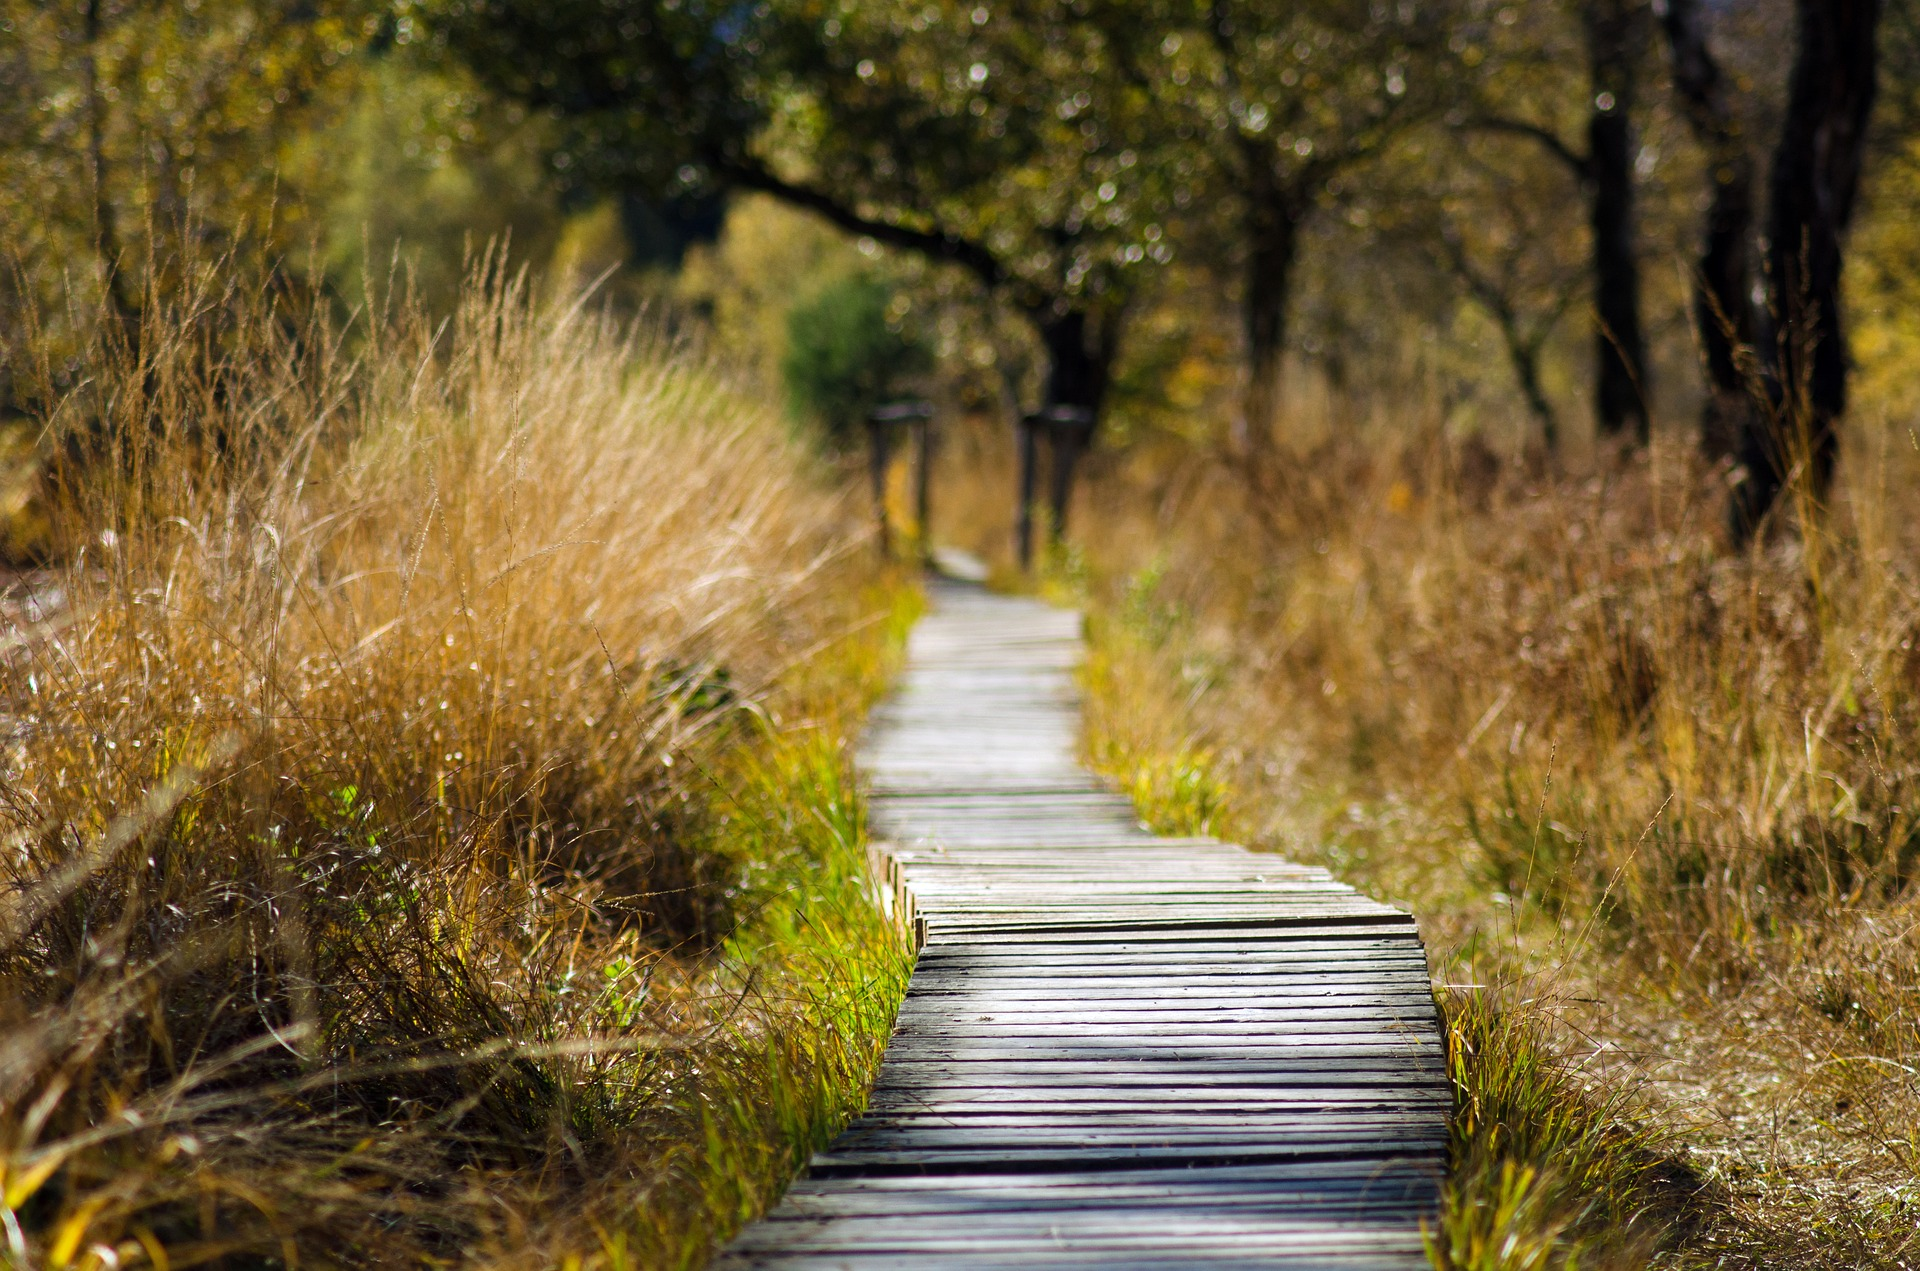 Austin has many peaceful park trails that are ideal for daily running routines.